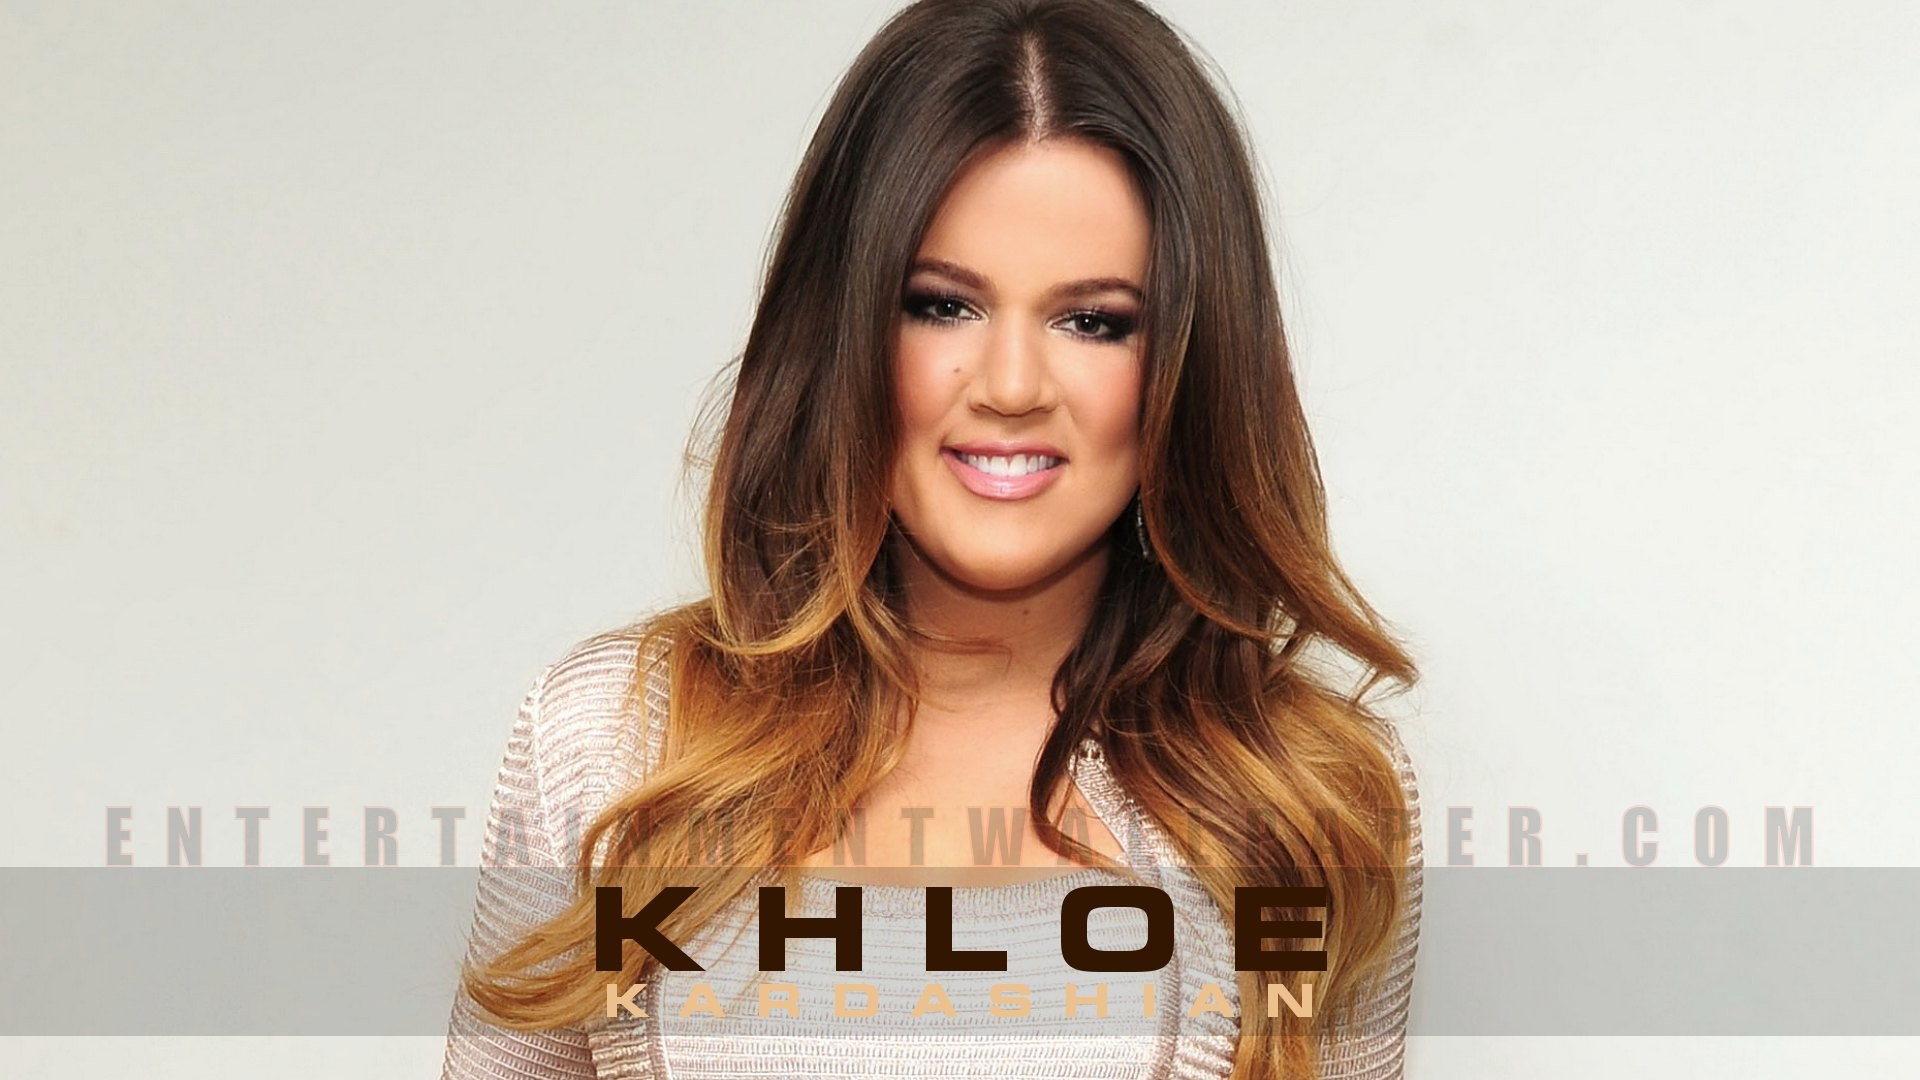 khloe-kardashian-free-hd-widescreen-1920-x-1080-kB-wallpaper-wp3407753